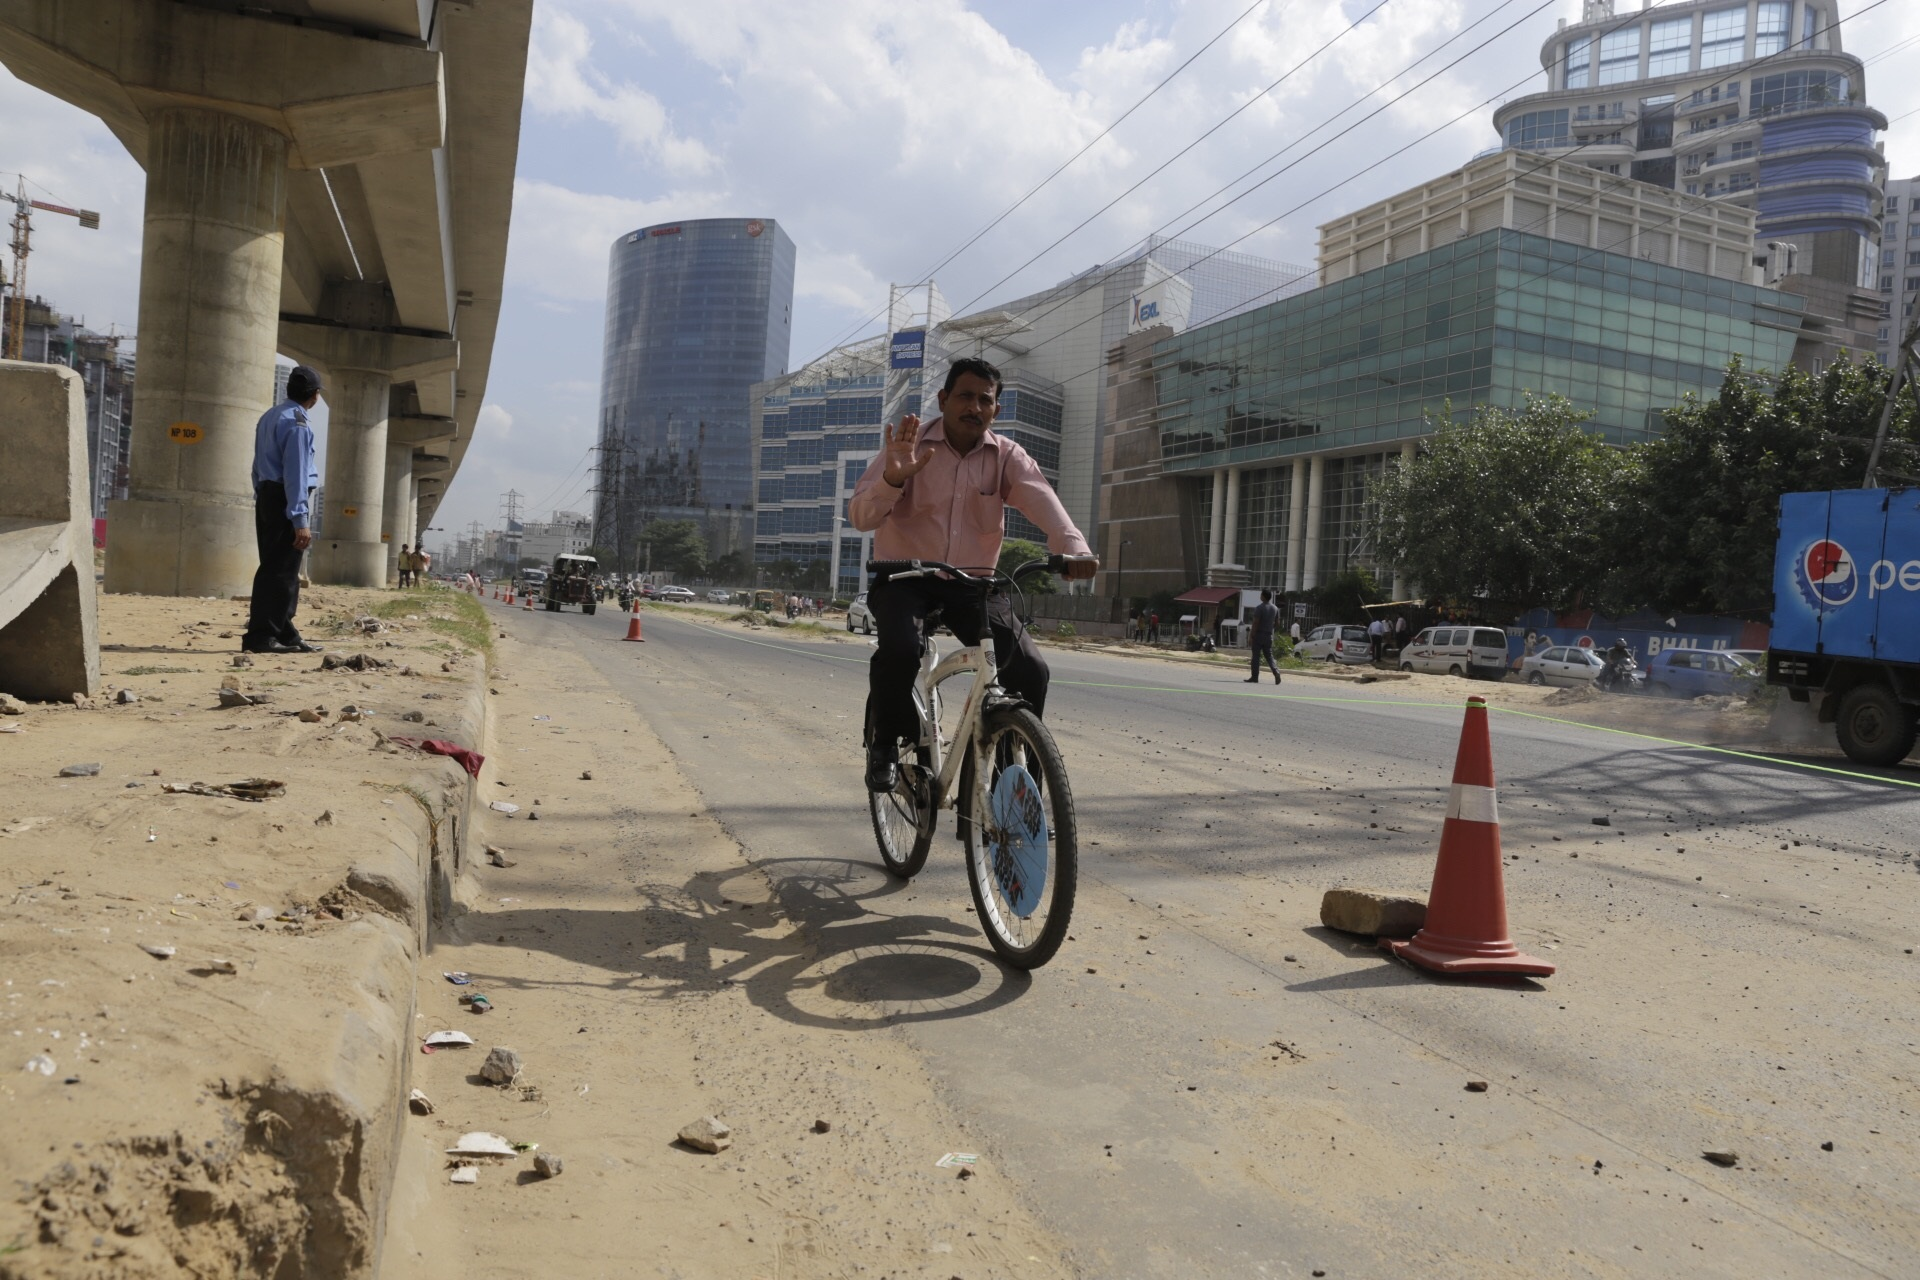 A man waves as he rides his bicycle in Gurgaon on Tuesday. Tracks were especially created to ensure smooth passage to cyclists